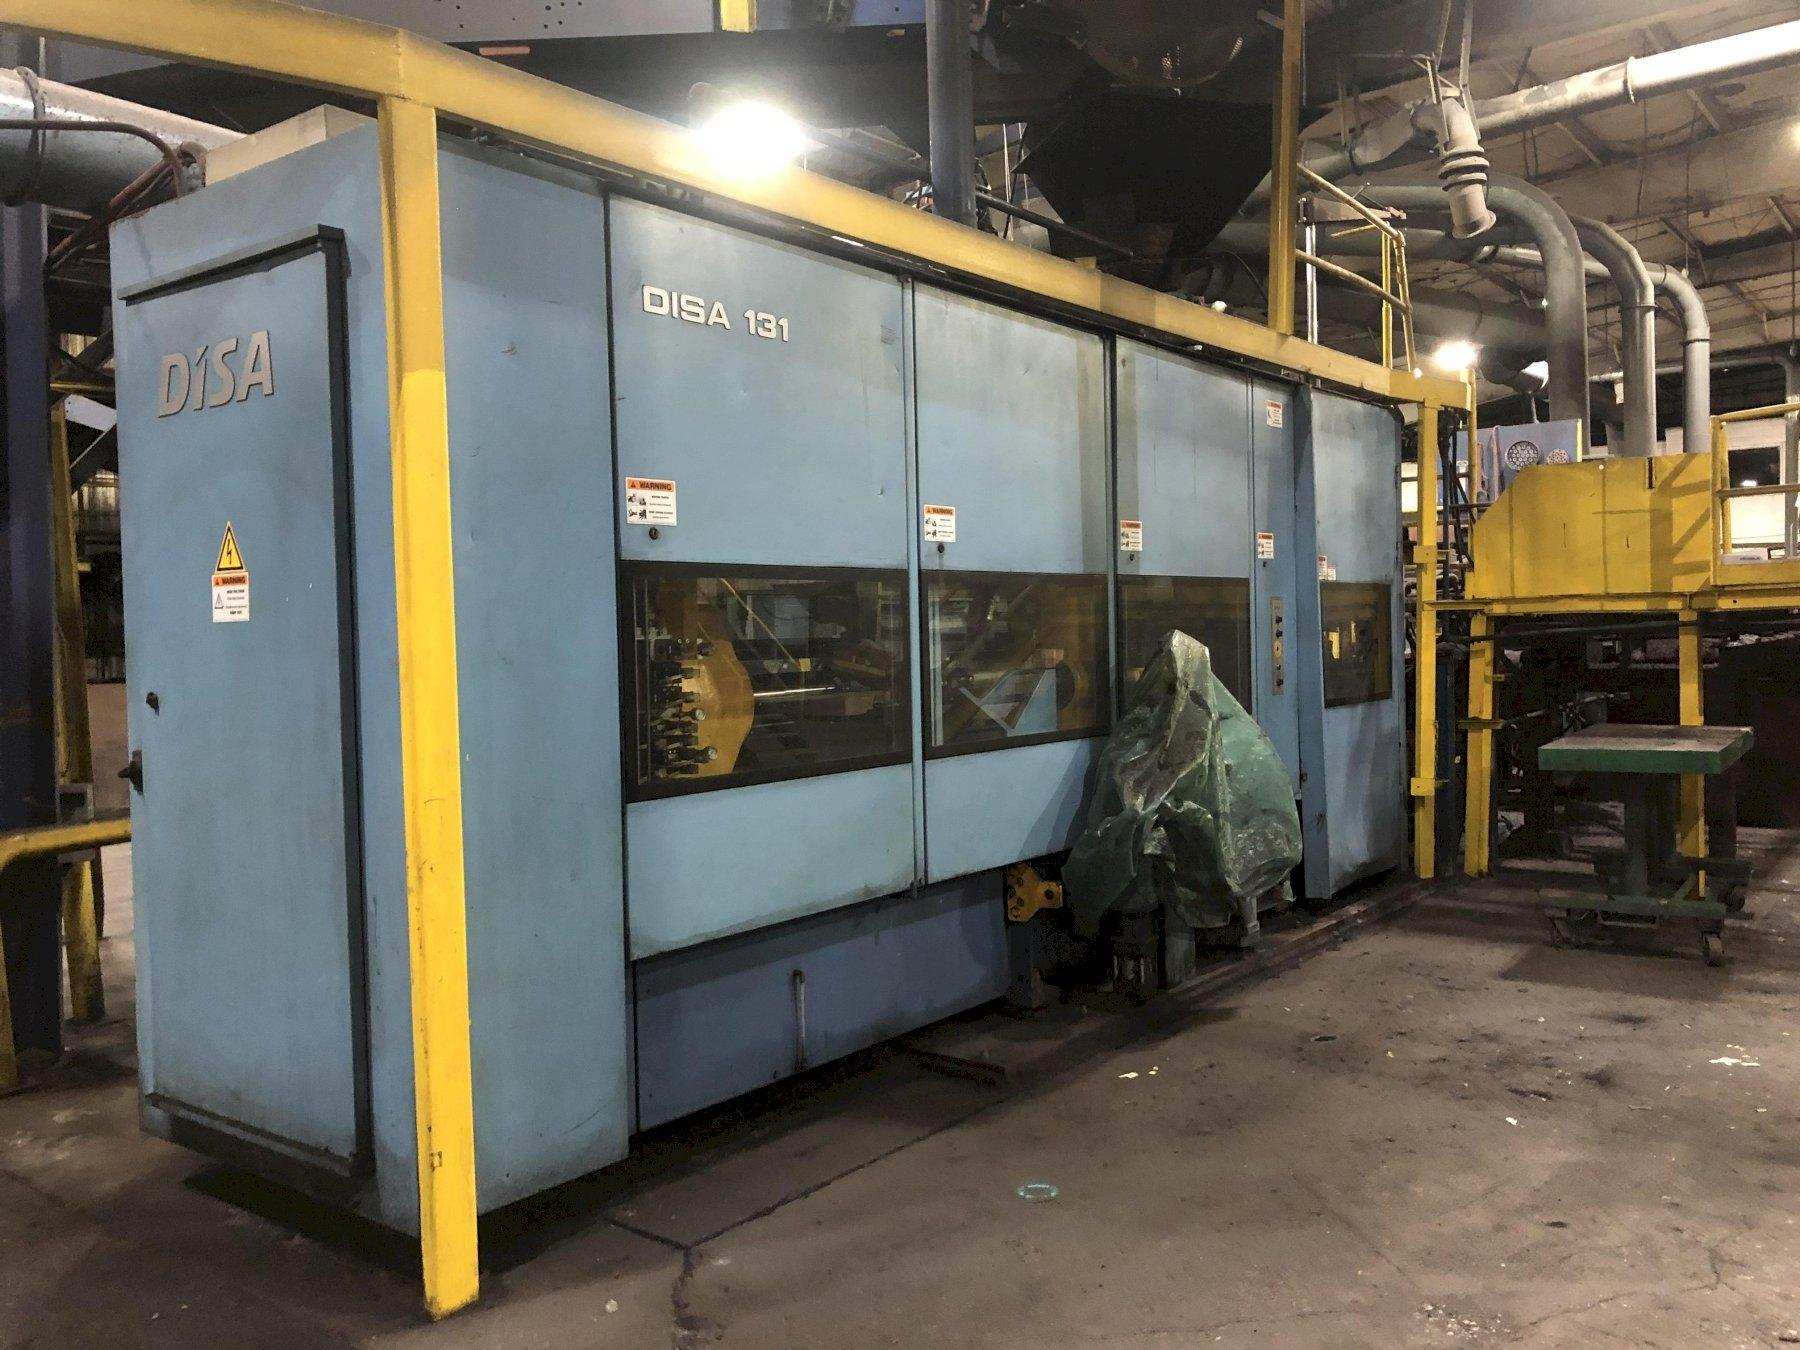 2012 DISAMATIC MODEL 131A (now d3a) AUTOMATIC MOLDING MACHINE S/N 140060 480 x 600 mm 150-395 mm cake. WITH CORE SETTER, CONTROLS, STOPPER ROD POURING SYSTEM WITH INOCULATION FEEDER, APPROX. MOLD COUN